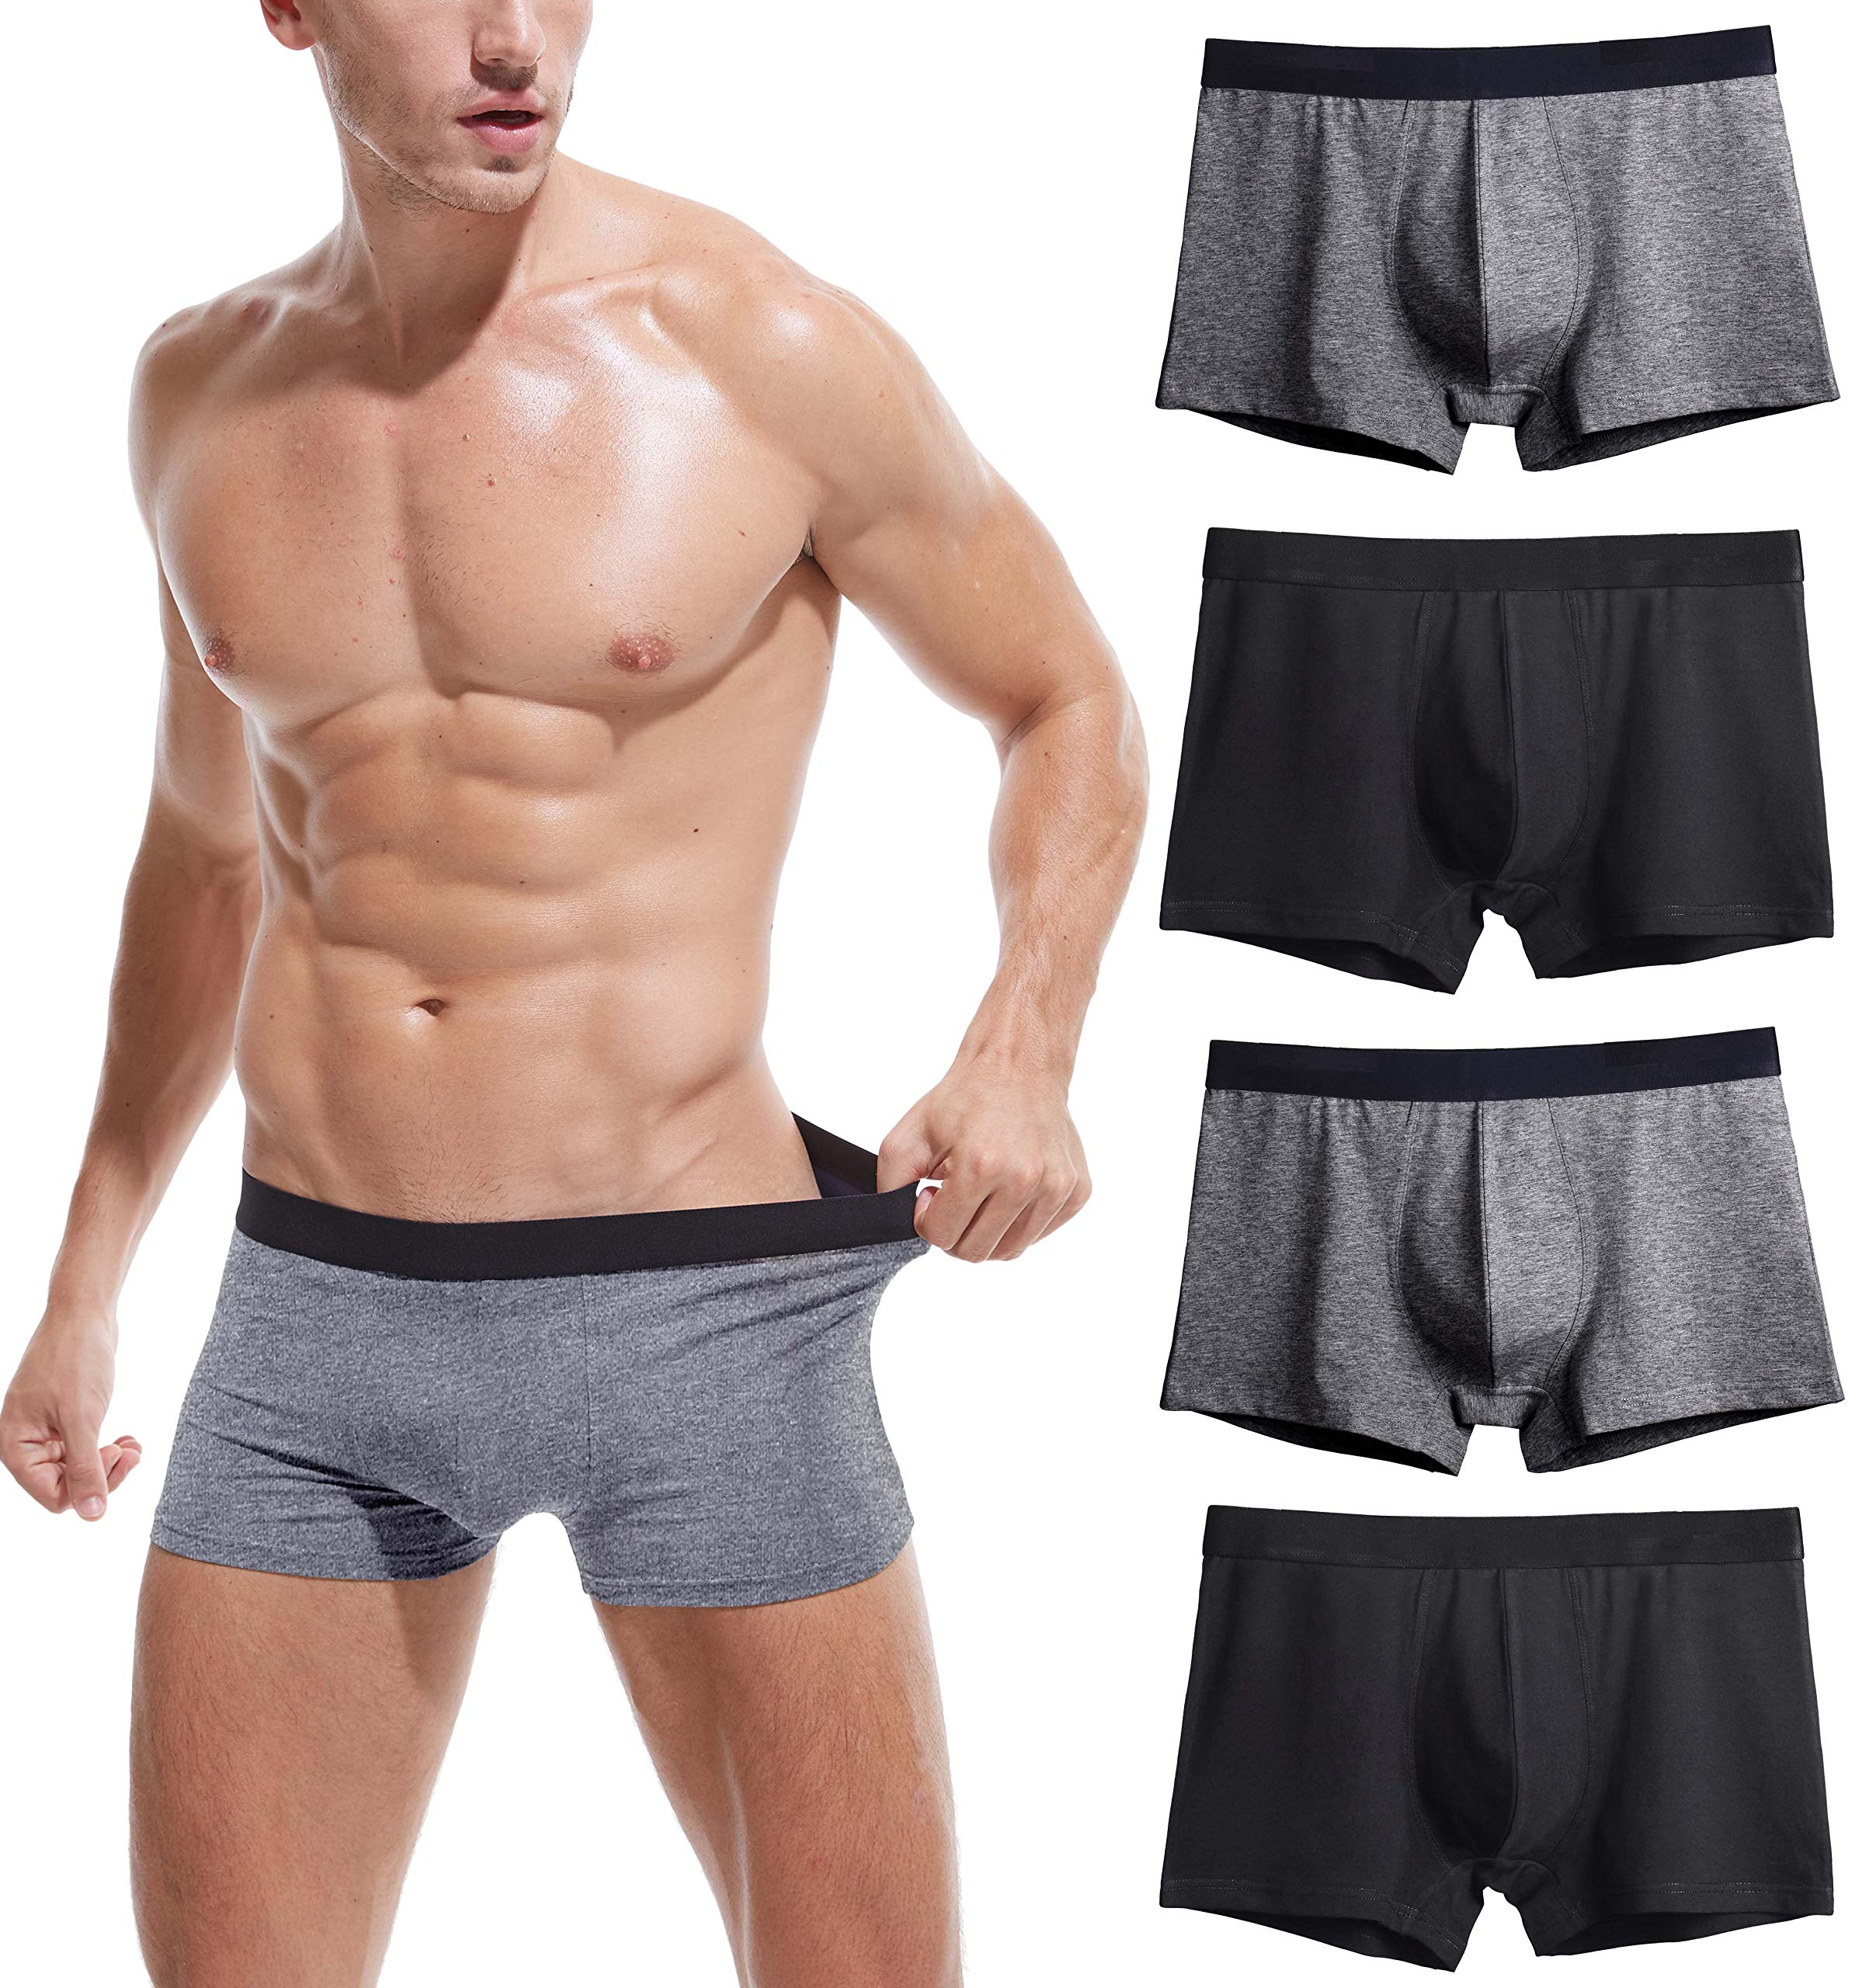 Robesbon Men's No Ride-up Boxer Briefs Stretch Comfortable Breathable Cotton Underwear 4 Pack Large by Robesbon